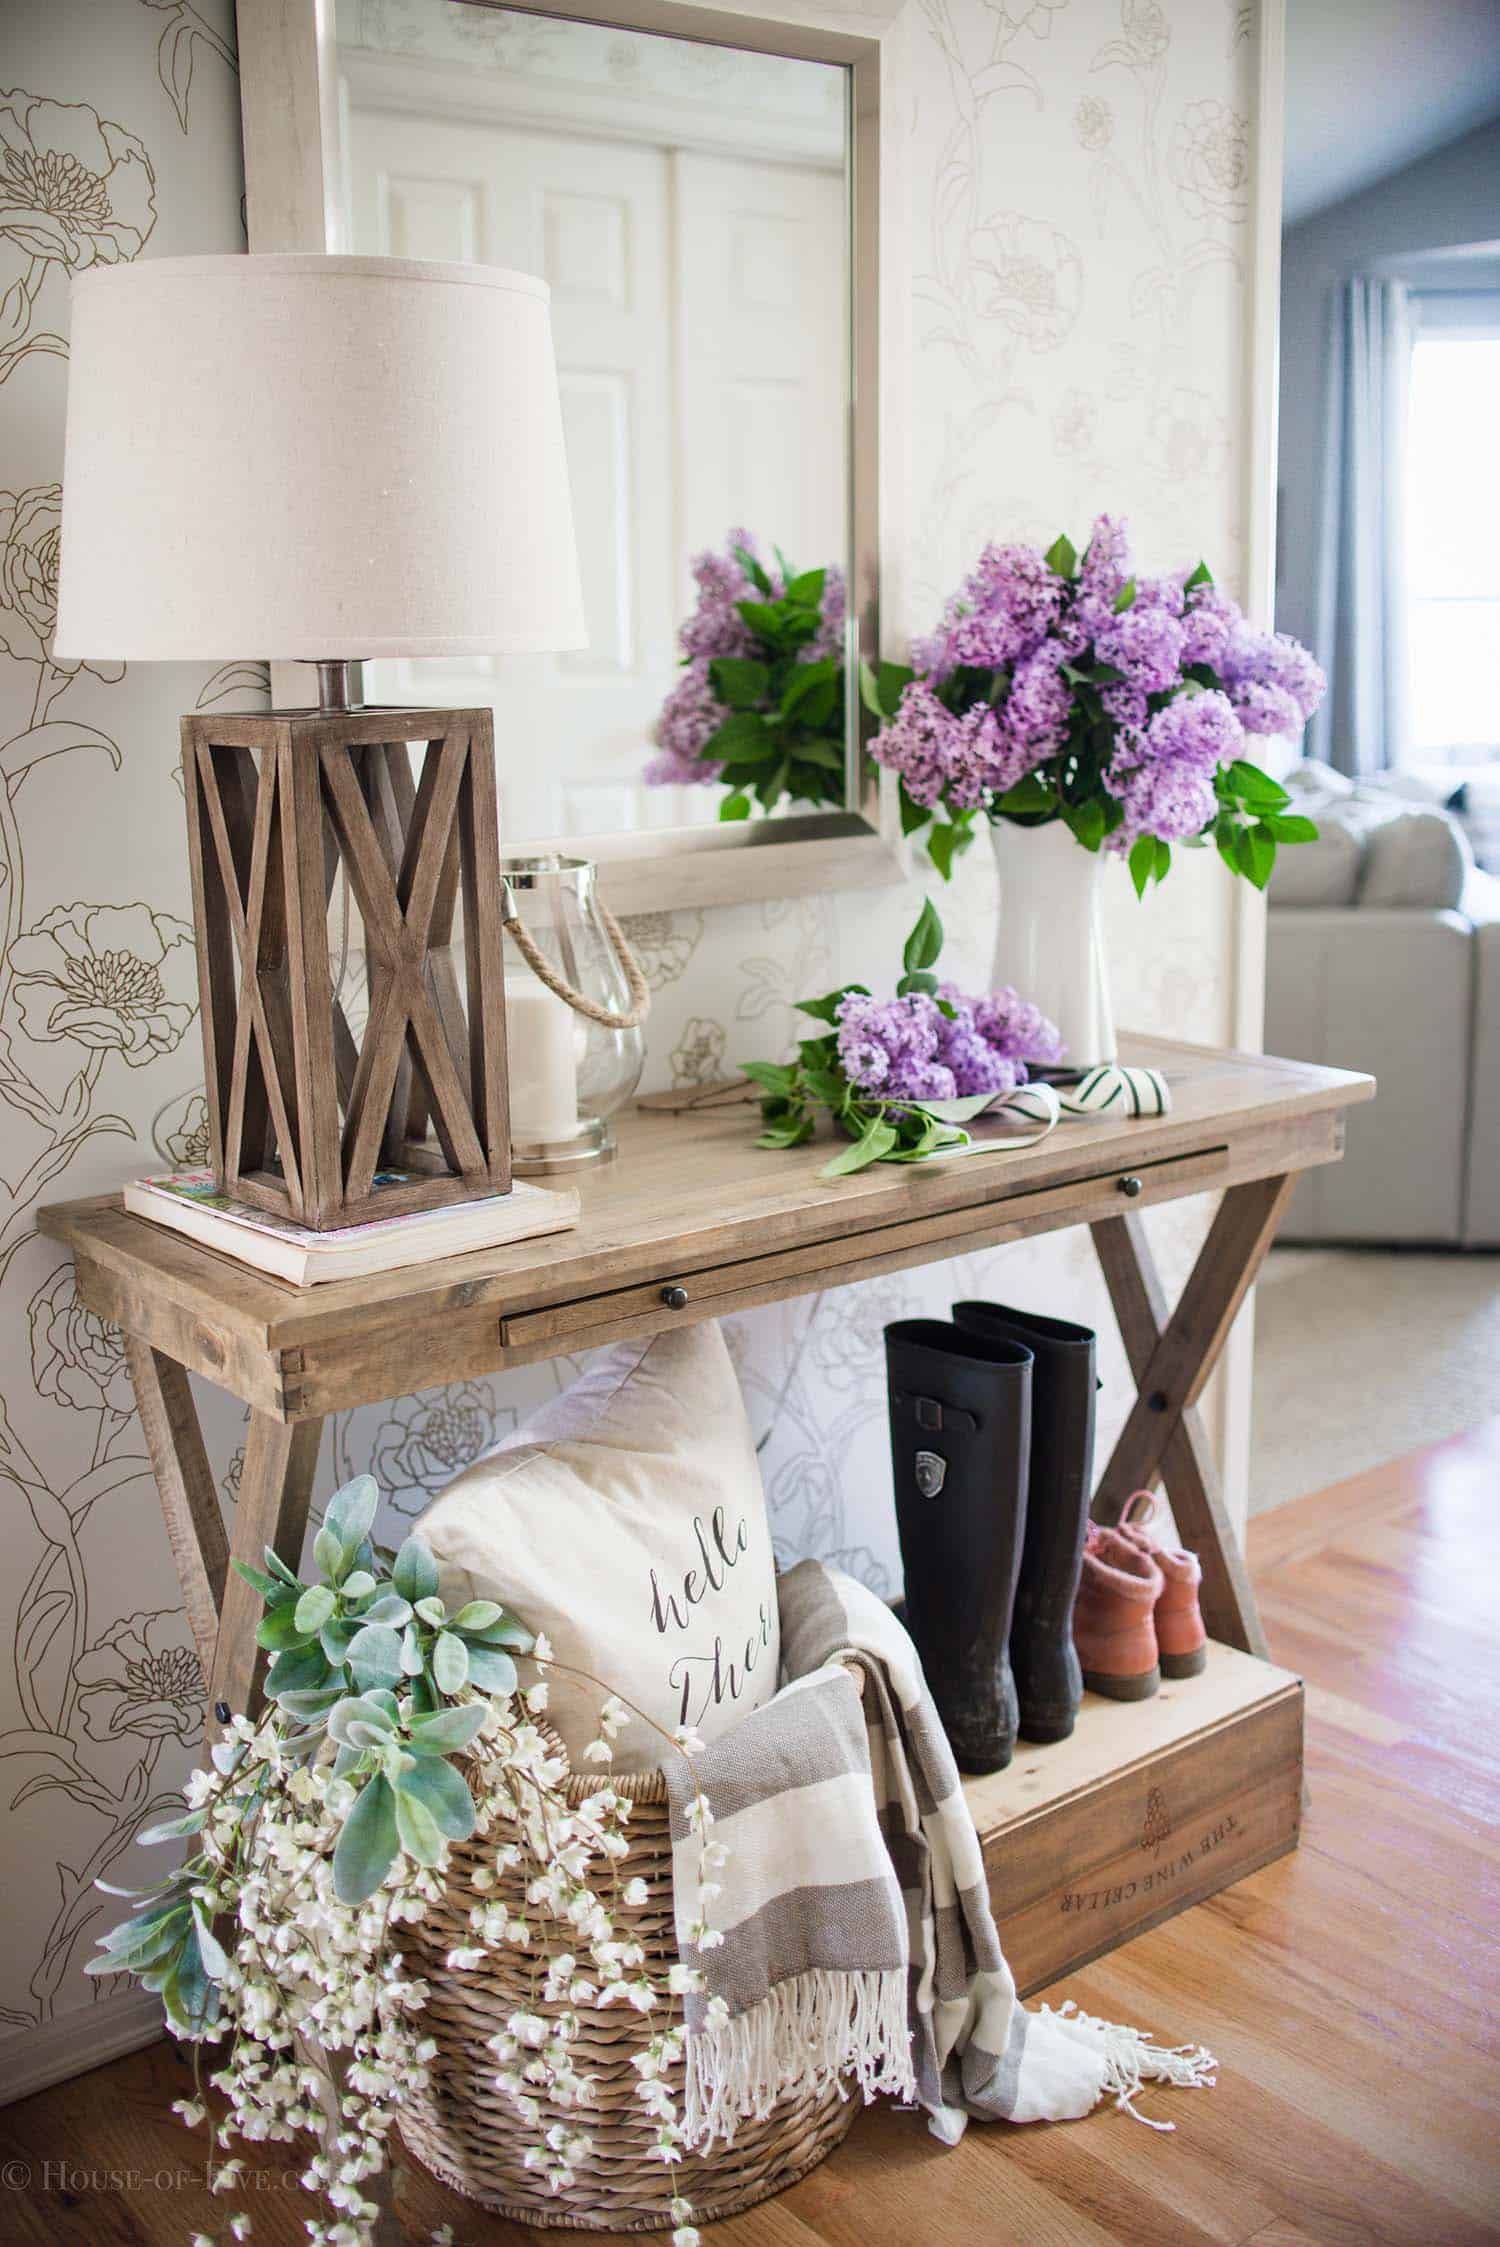 Ideas For Styling Living Spaces For Spring-14-1 Kindesign